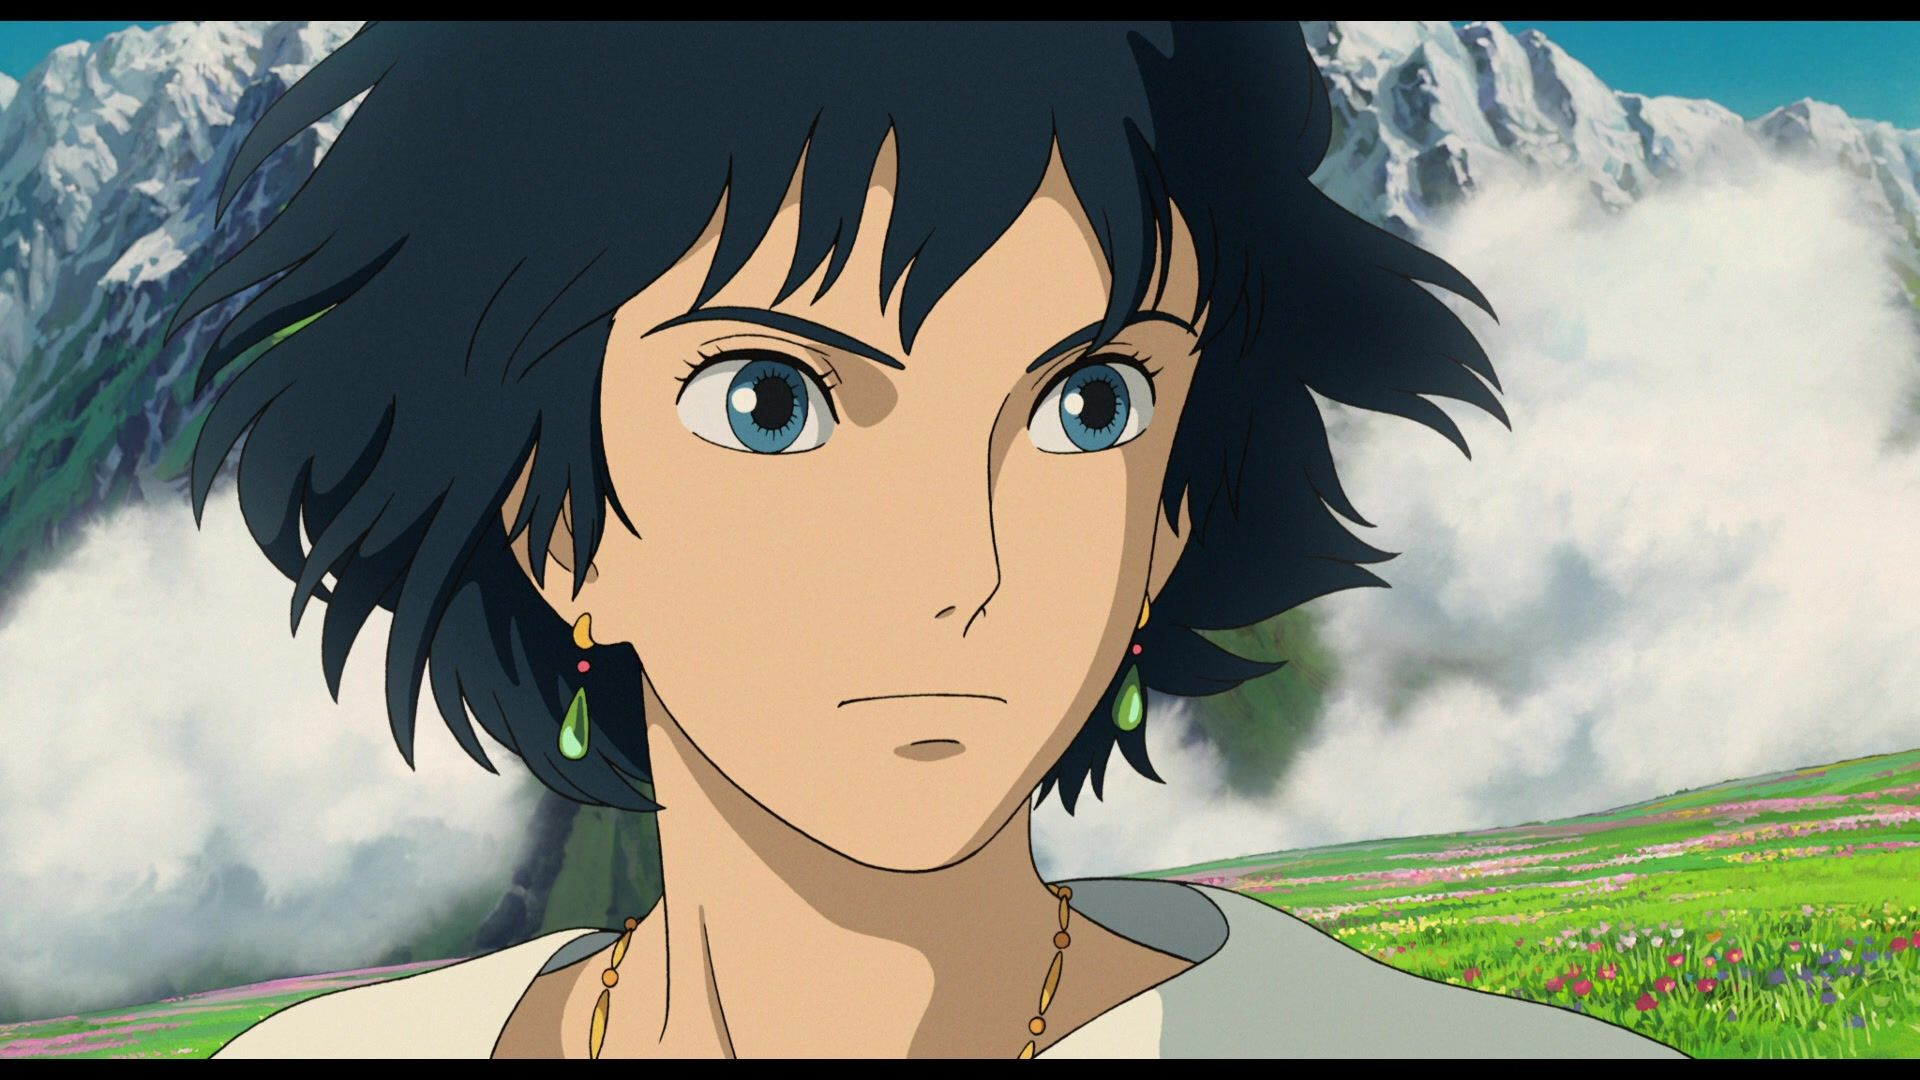 Howls moving castle screencap and image in